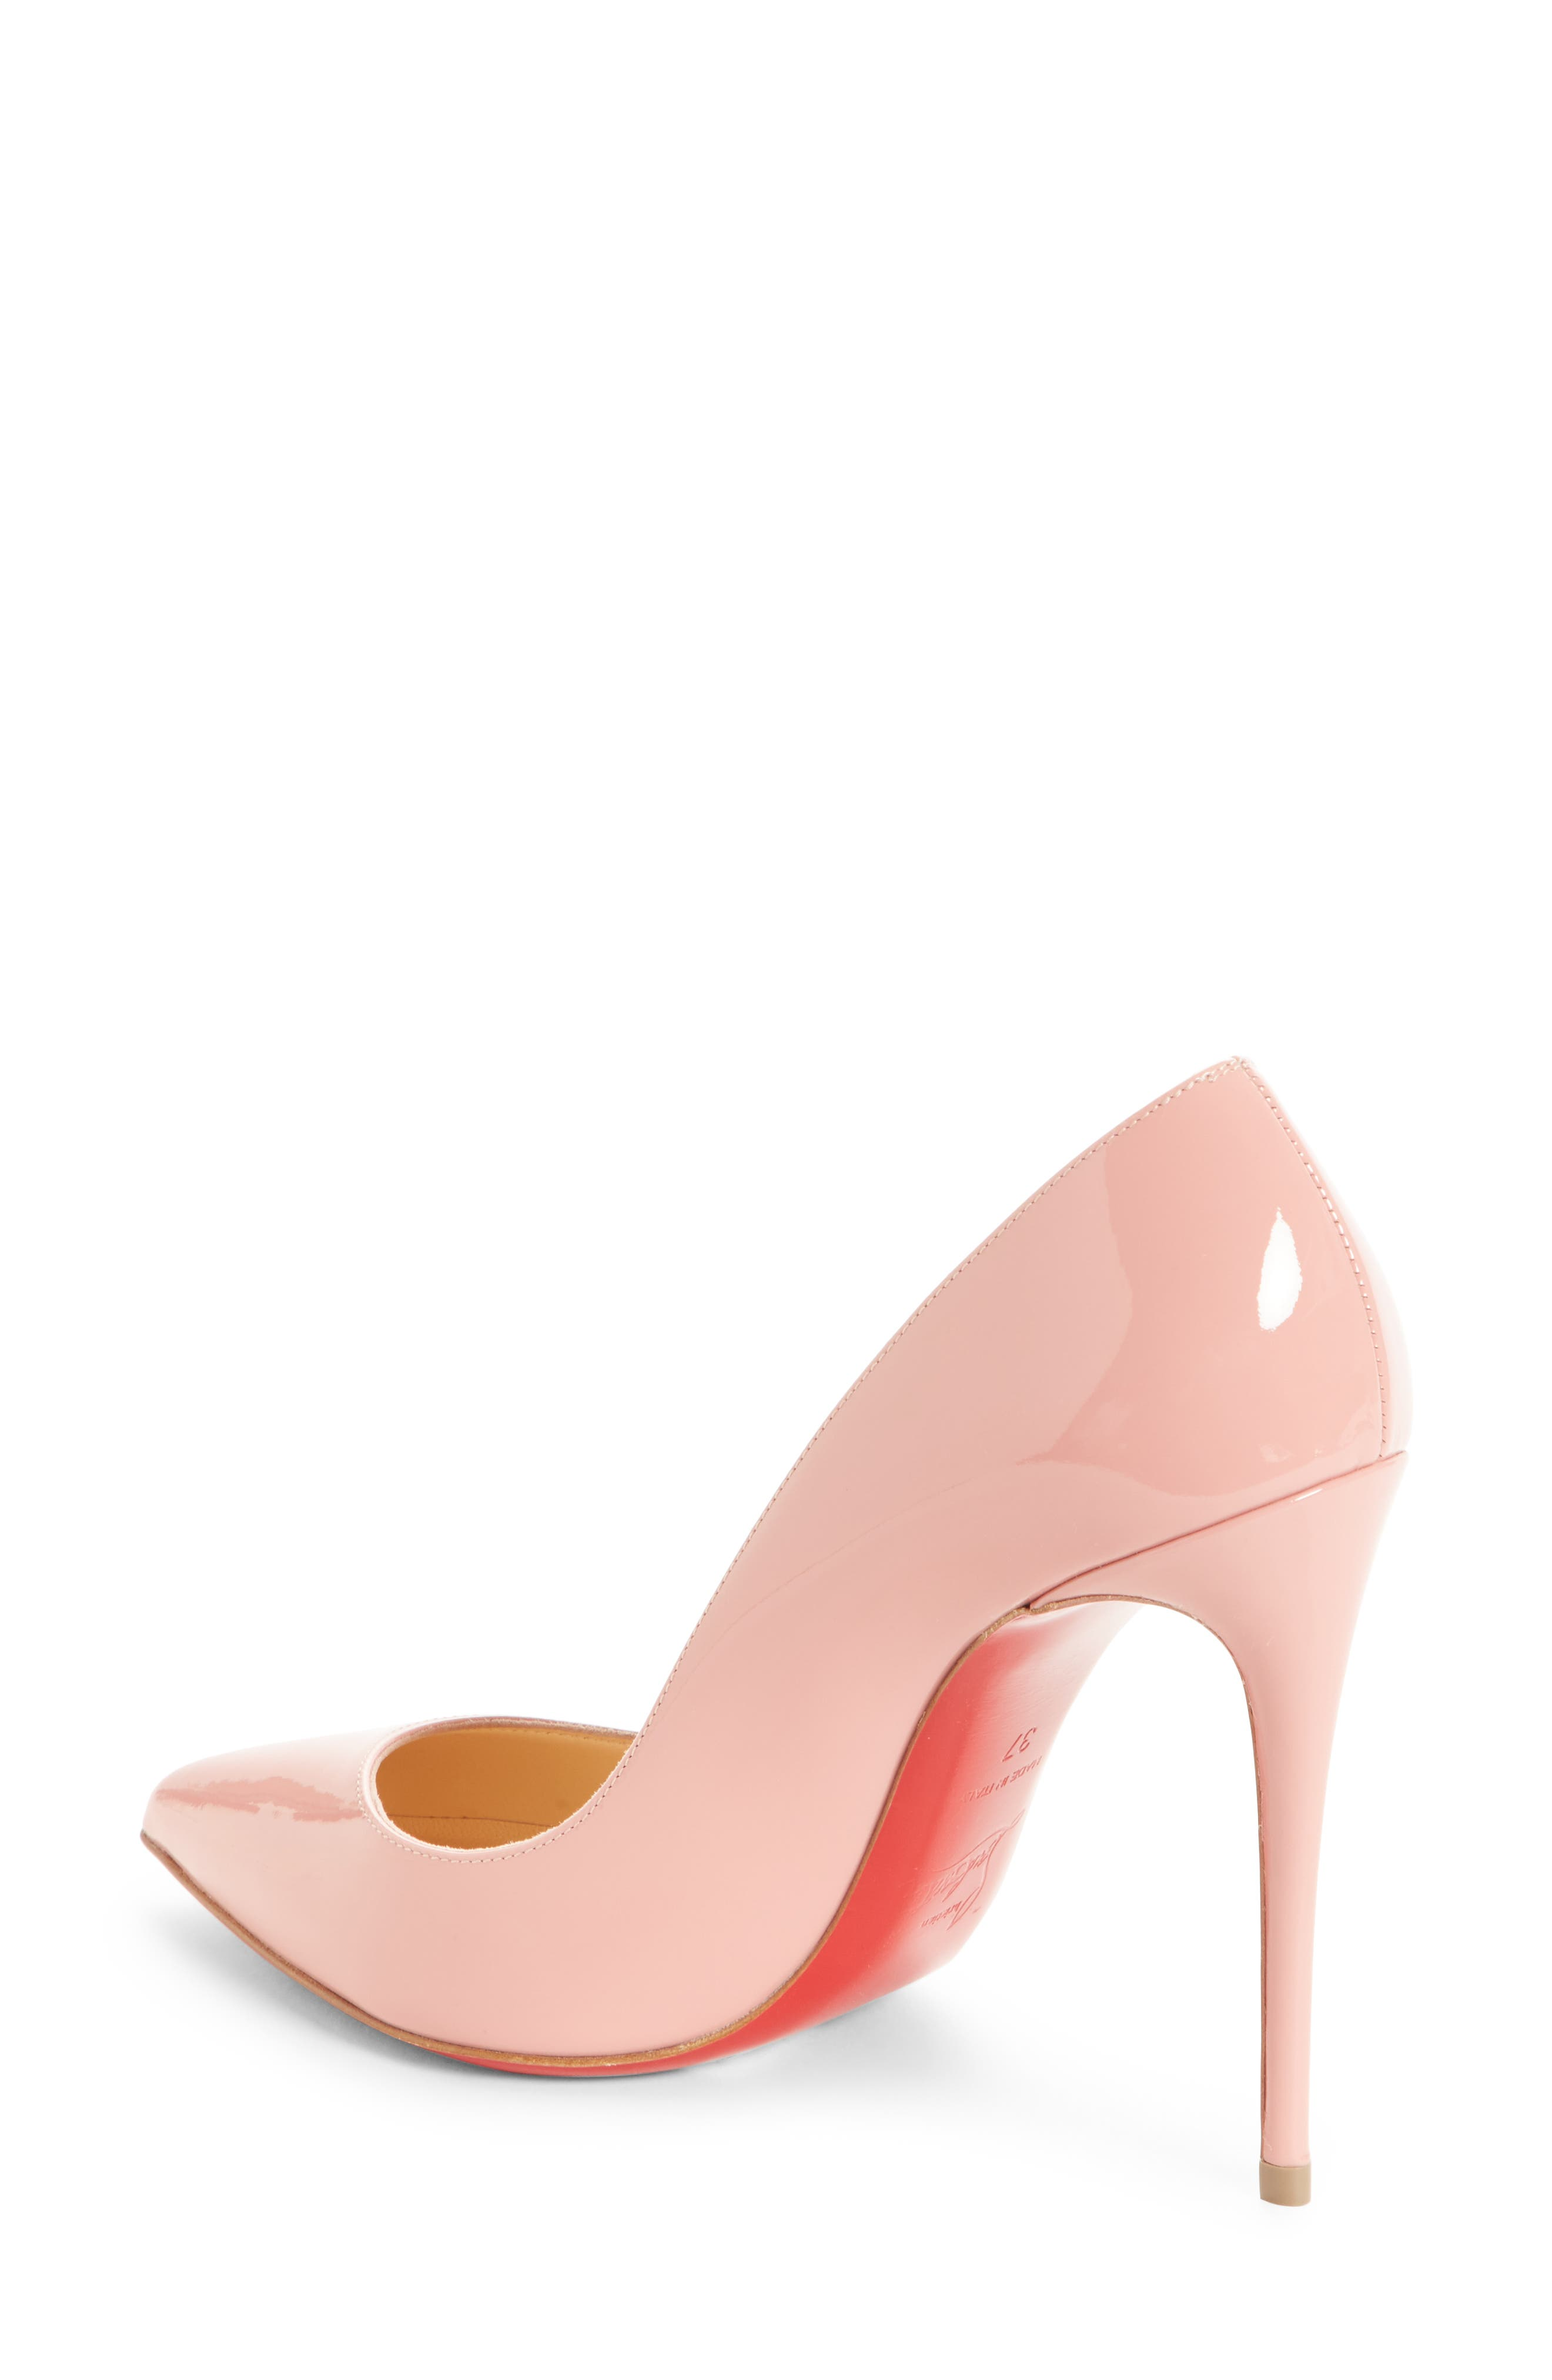 'Pigalle Follies' Pointy Toe Pump,                             Alternate thumbnail 2, color,                             Marshmallow Pink